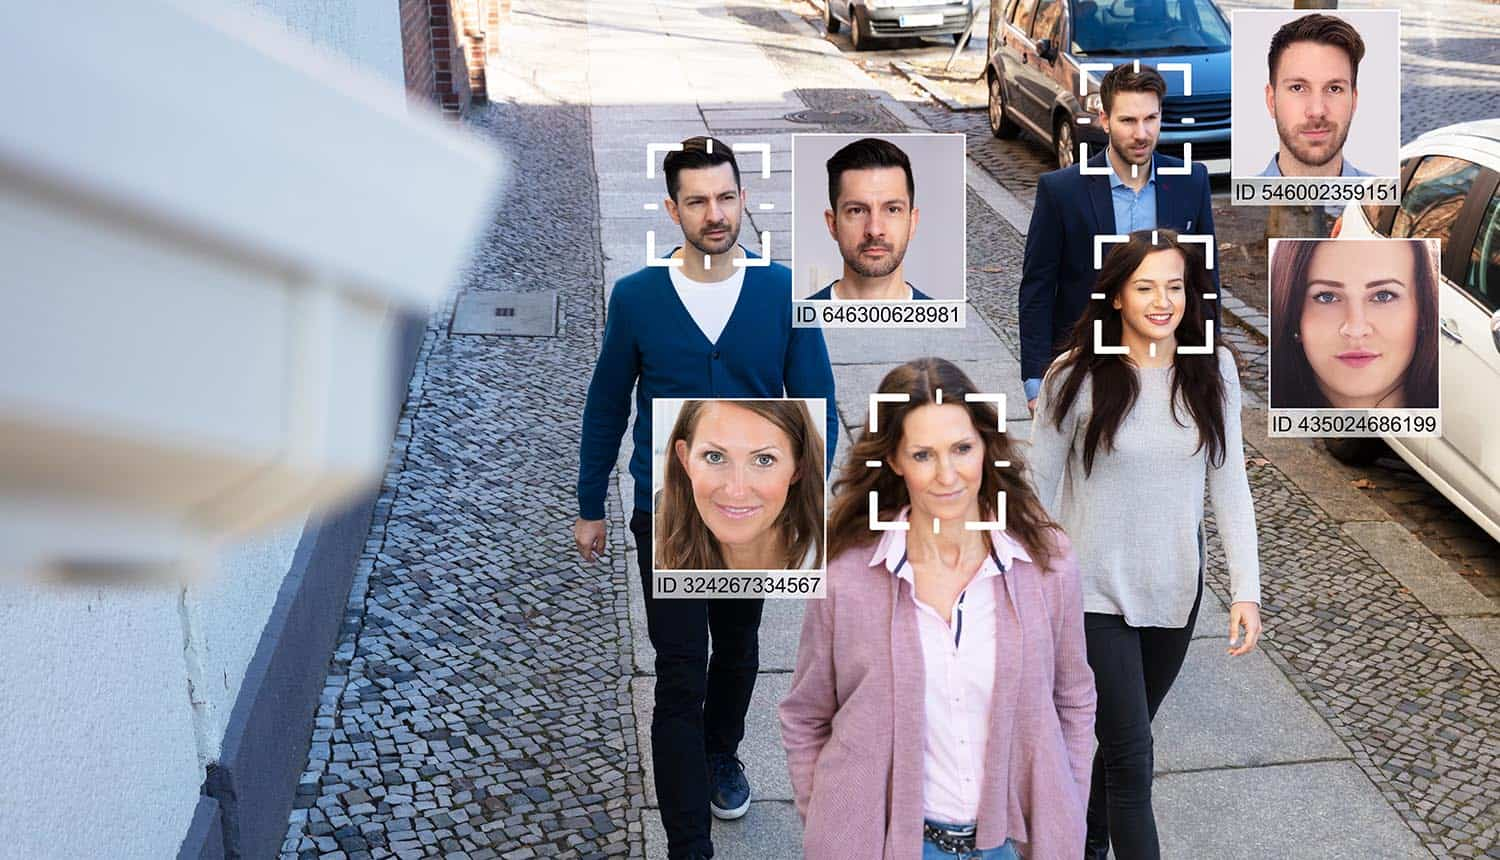 Selective focus of people faces recognized on the street showing use of facial recognition technology